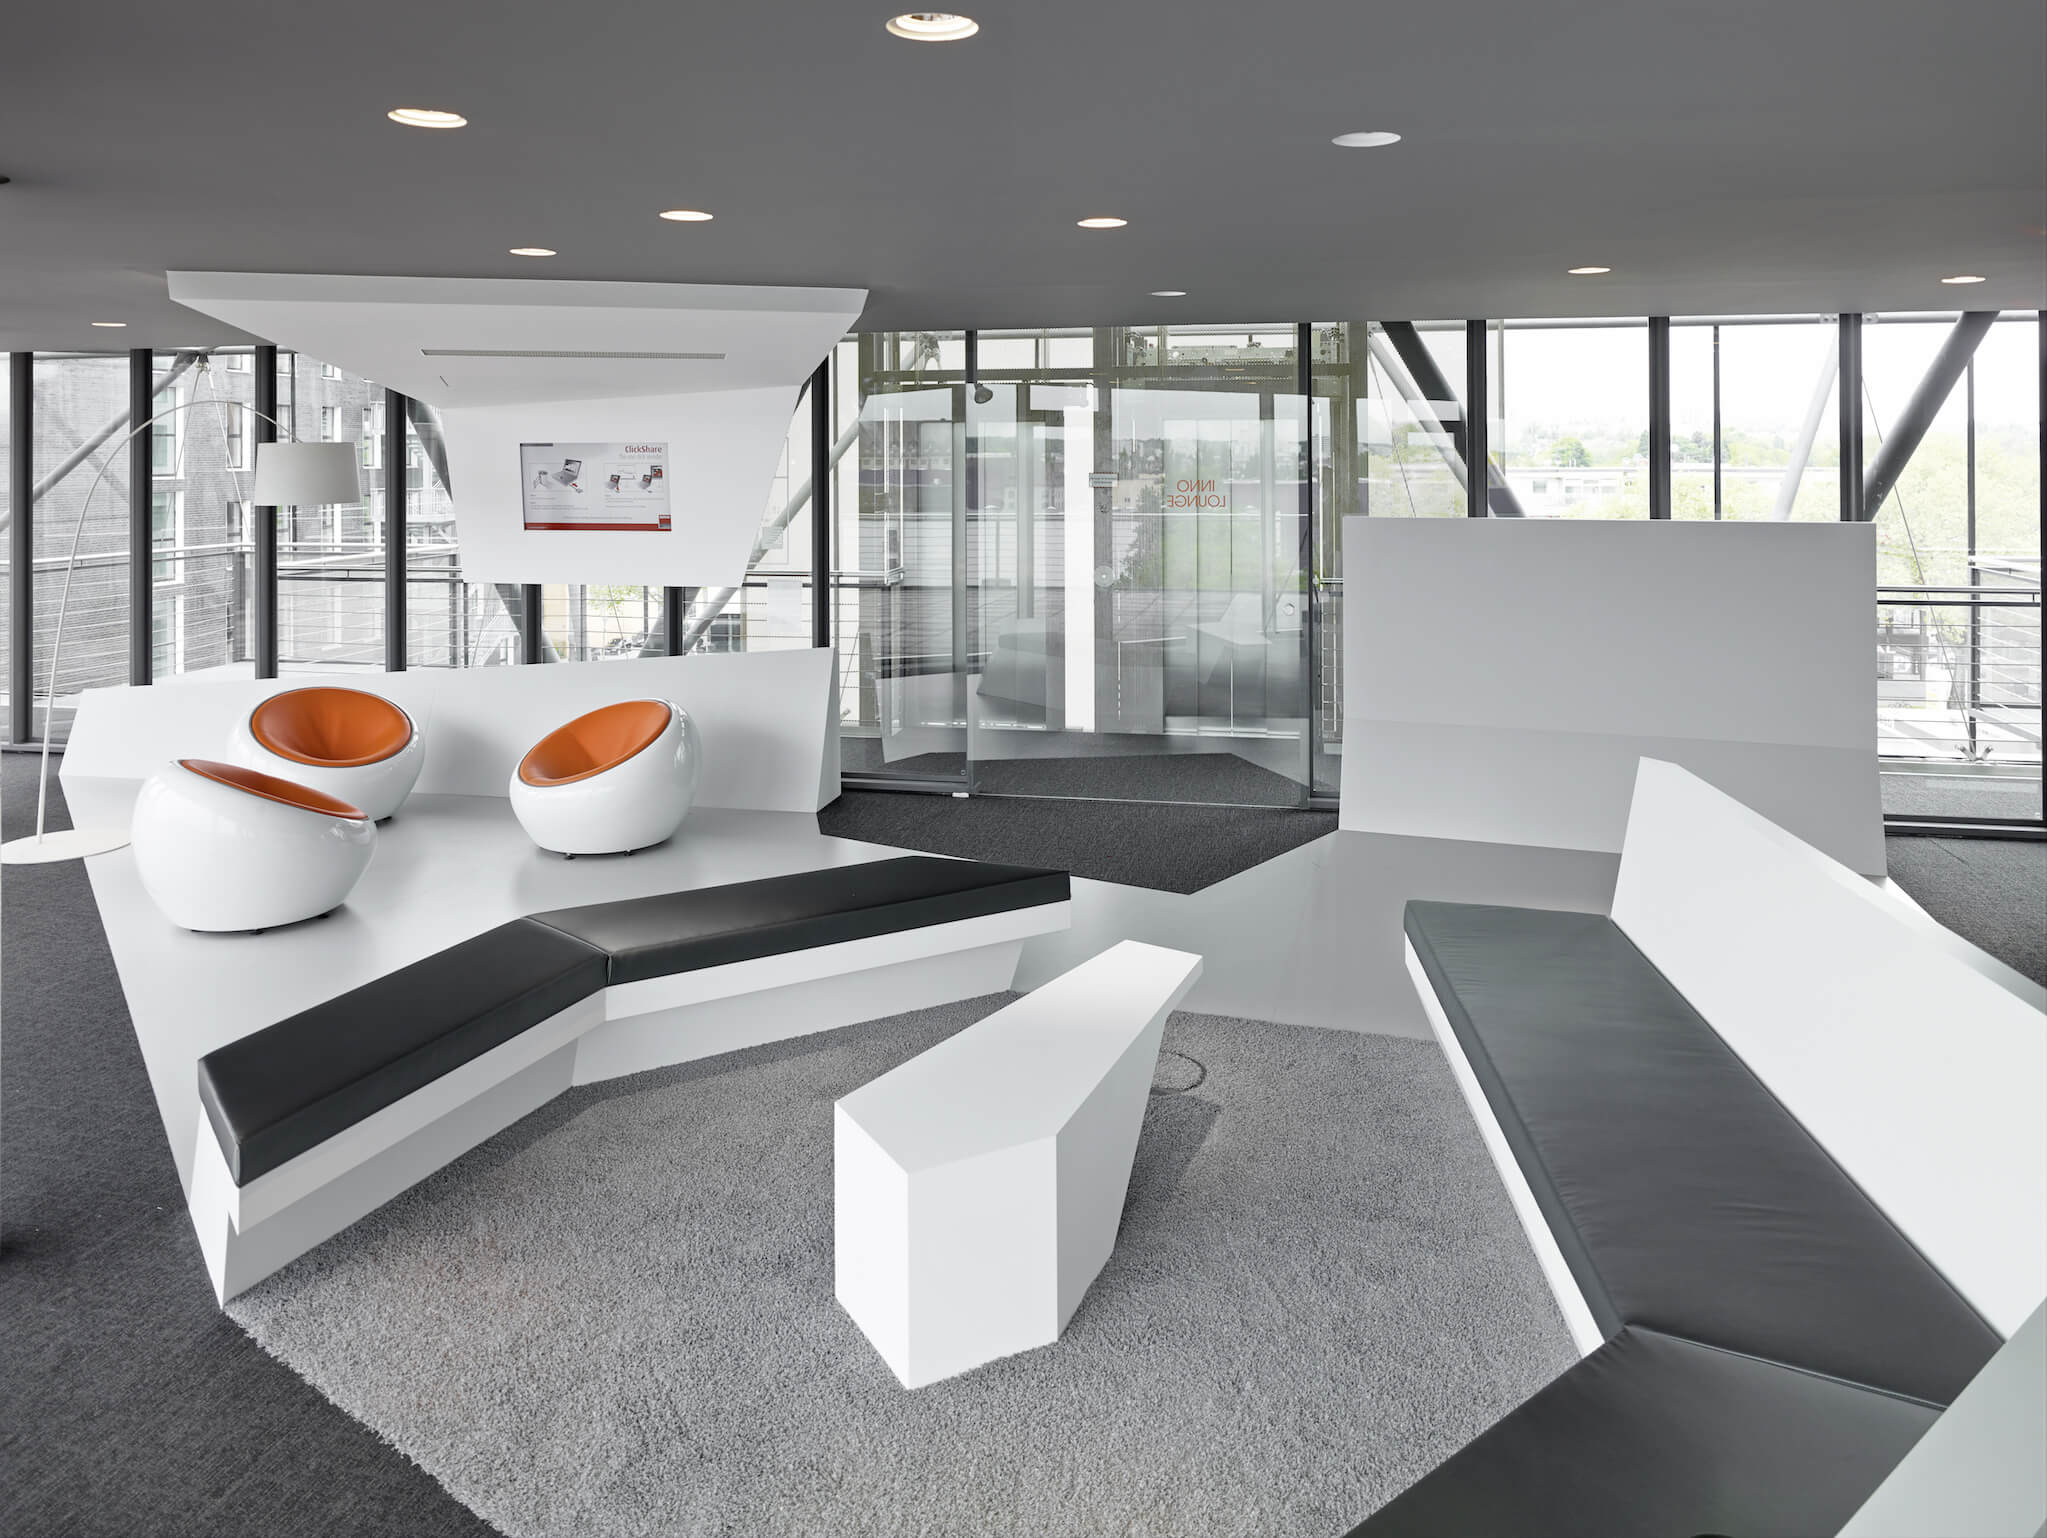 Polygonal constructions abound in the office, seen here functioning as the framing shell to a conversational space. Minimalist, high contrast philosophy informs the design, pairing black leather cushions with white geometric structures, plus bold orange standing out on the egg chairs.